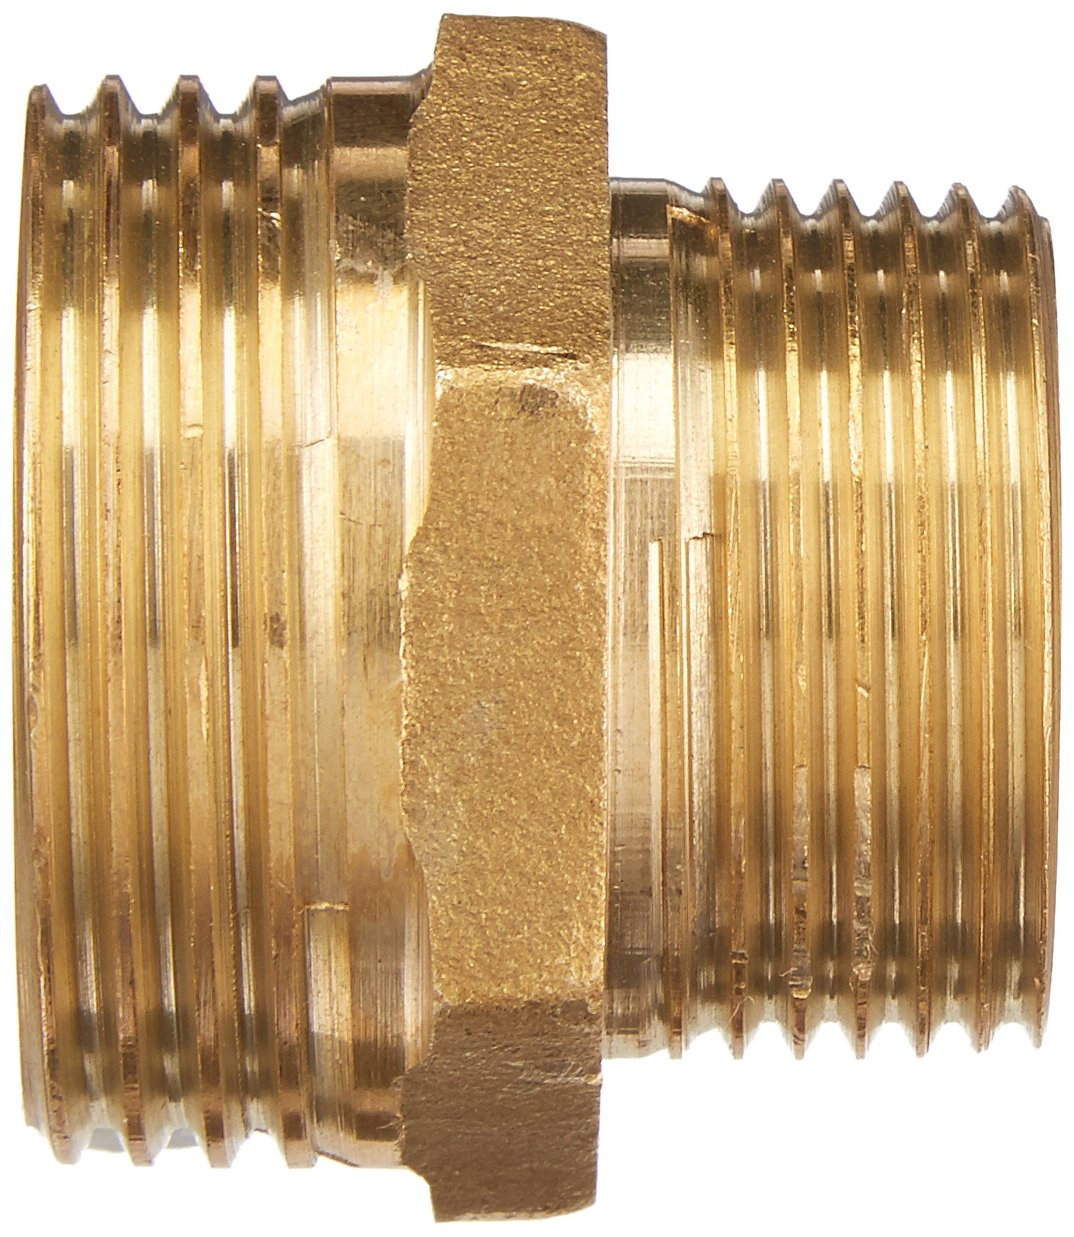 uxcell Brass Pipe Reducing Hex Nipple Fitting 1//4 G Male x 3//8 G Male Connector Gold Tone